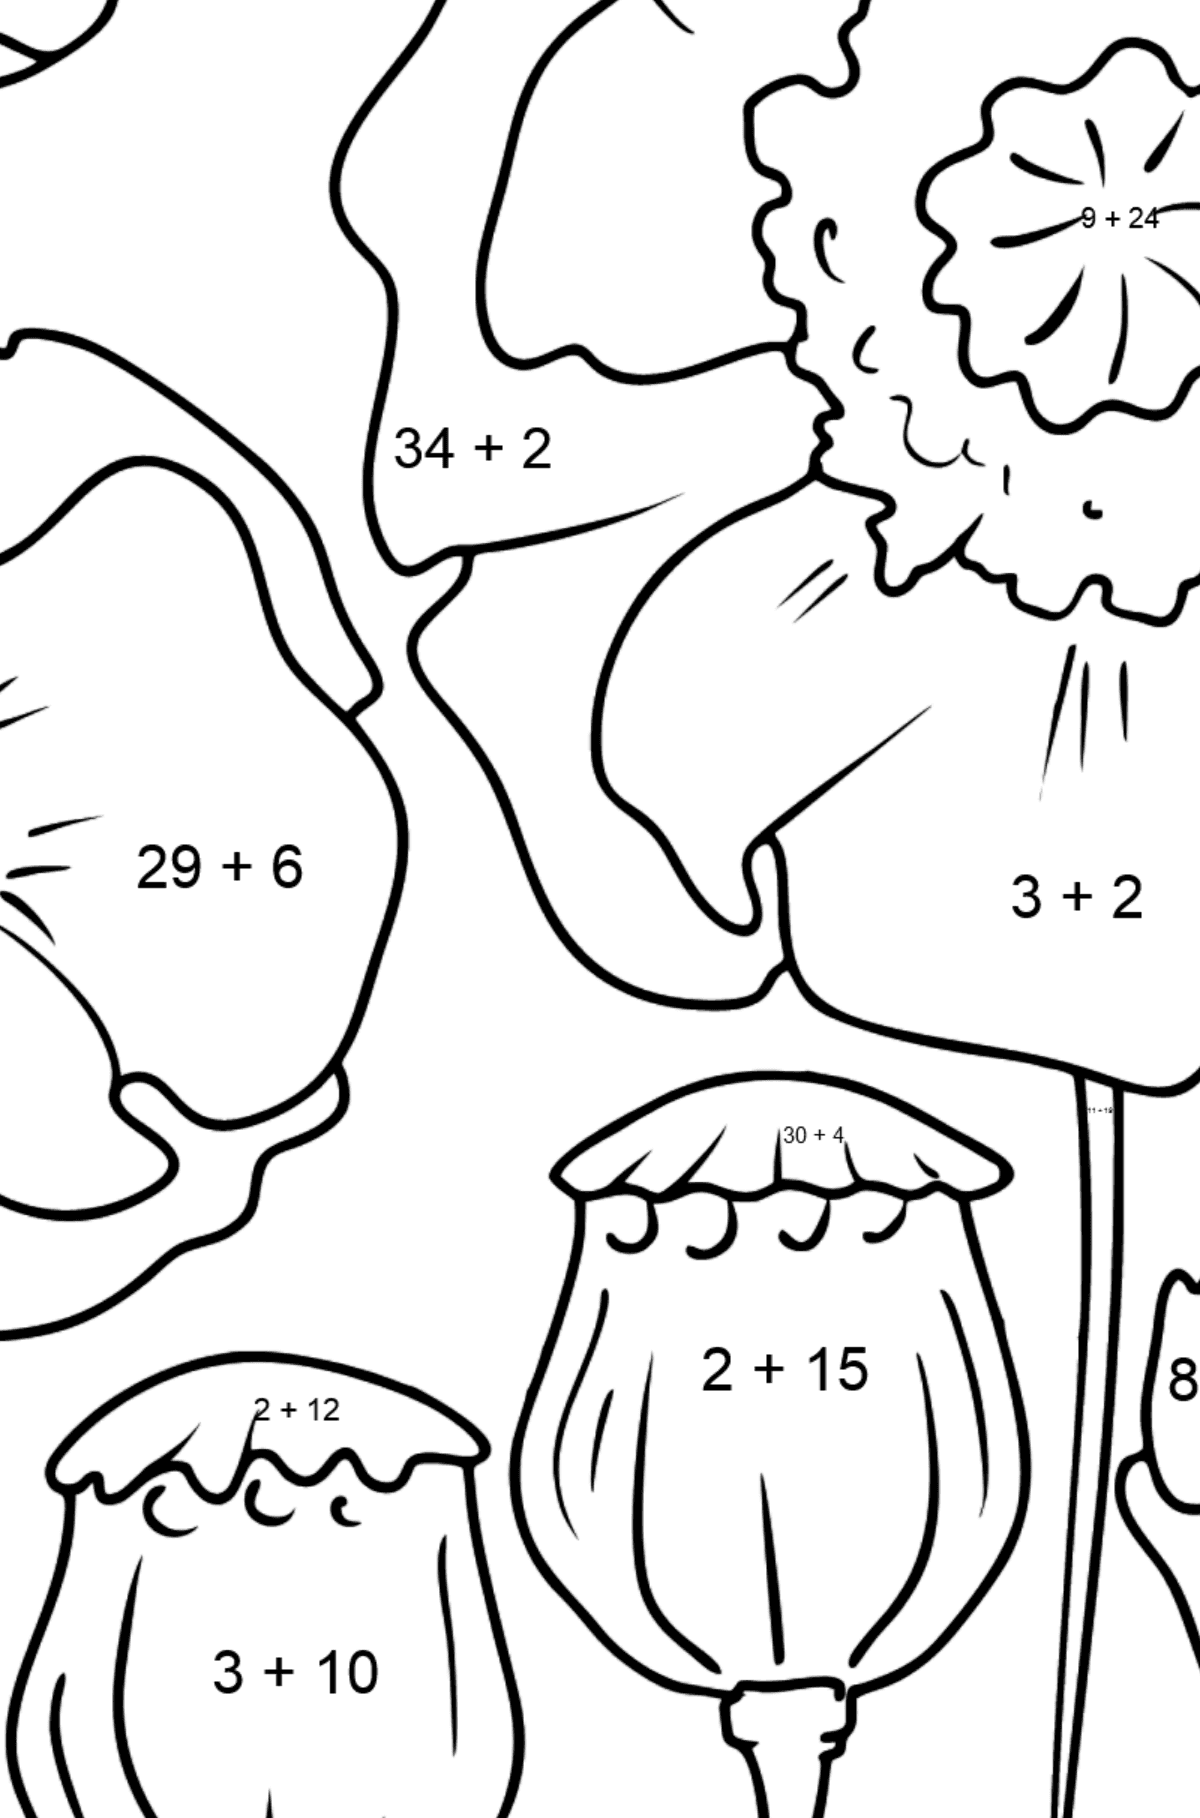 Flower Coloring Page - Poppies - Math Coloring - Addition for Kids